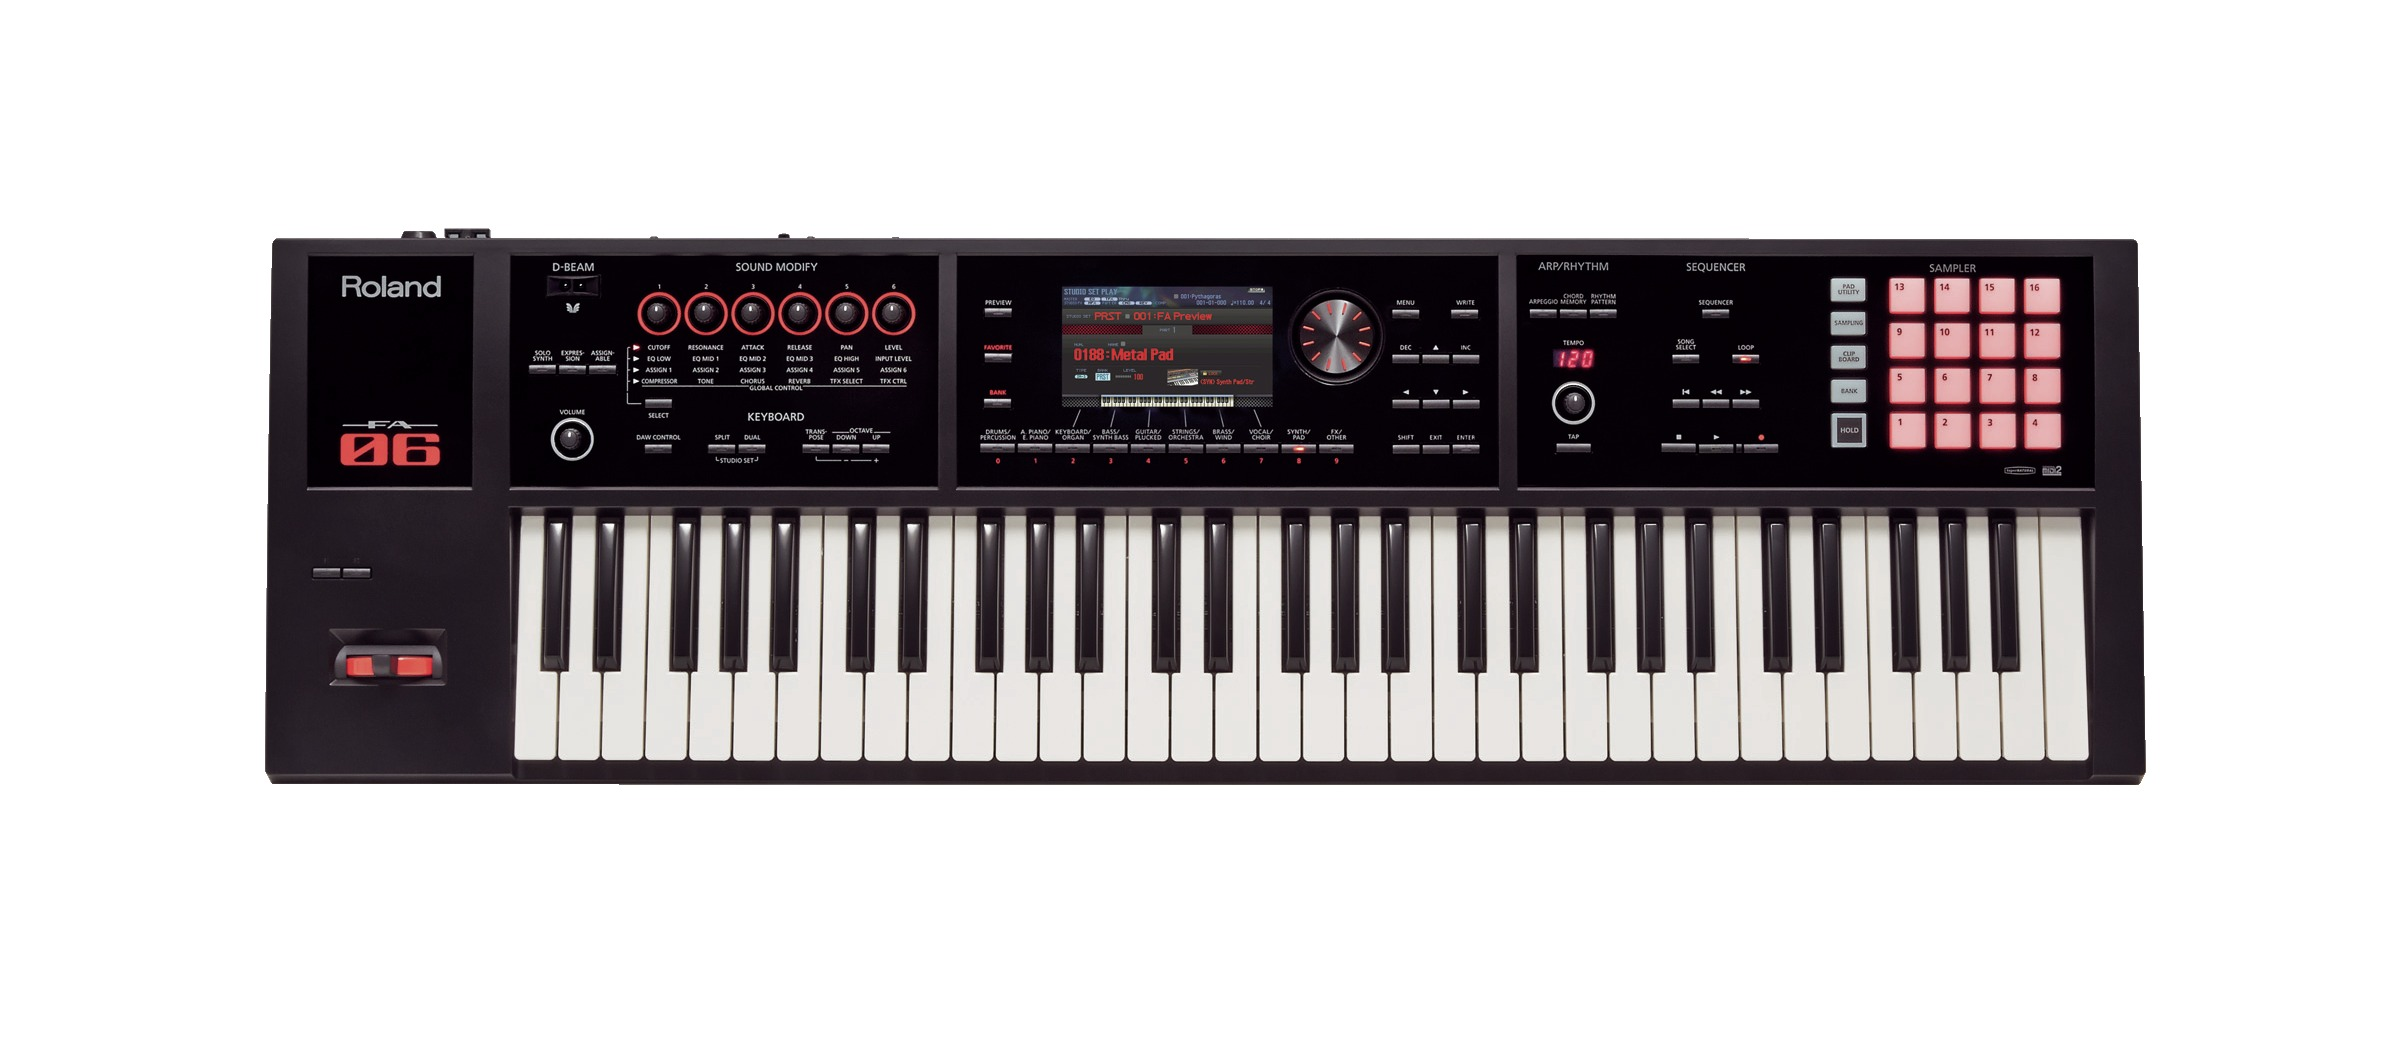 Claviers & Pianos - WORKSTATIONS - ROLAND - FA-06 - Royez Musik